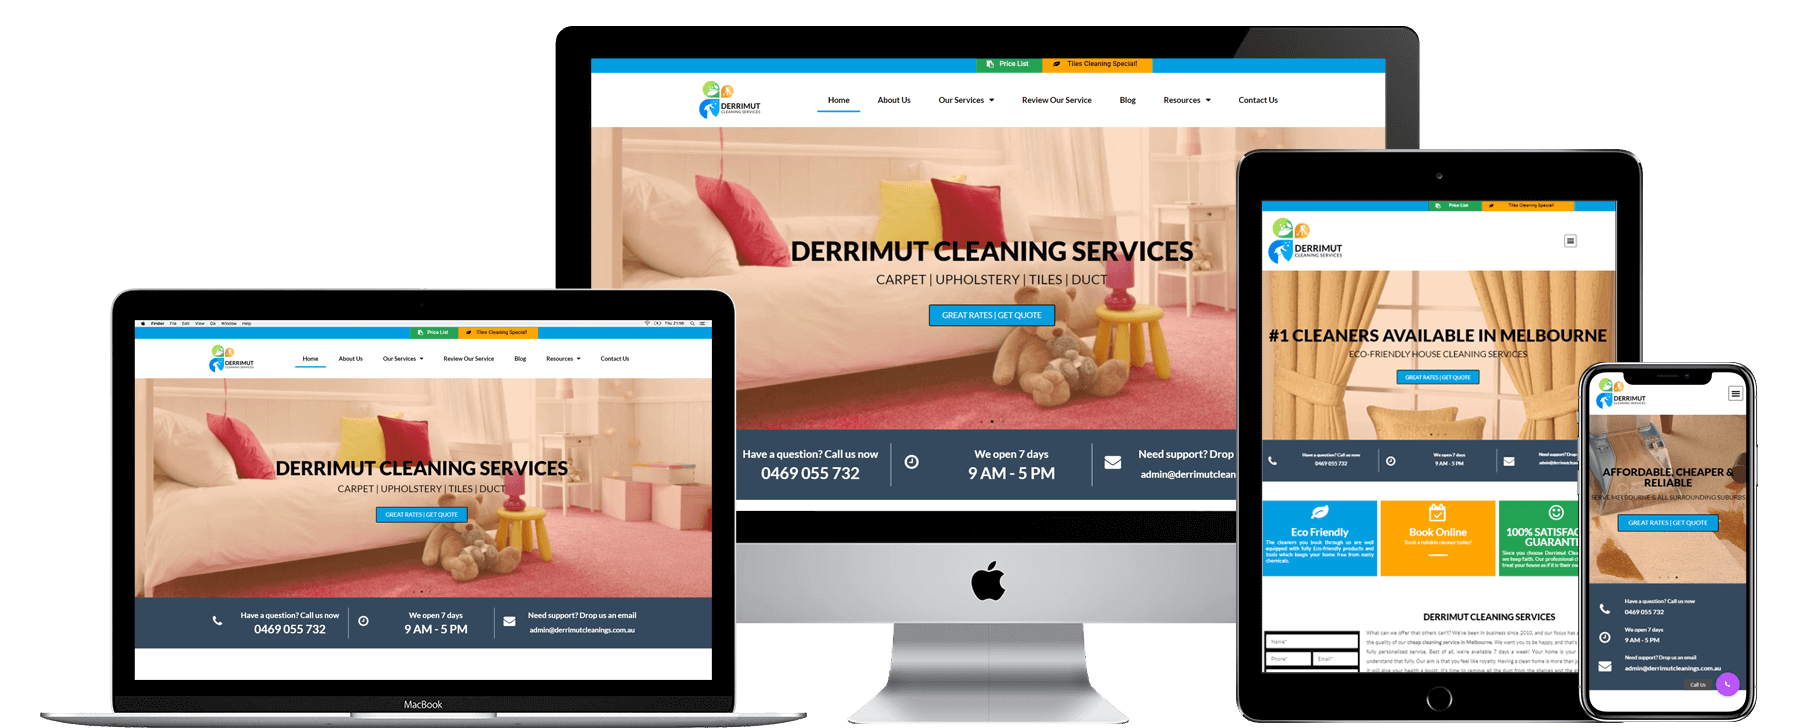 Portfolio (ALL) Derrimut Cleaning Services